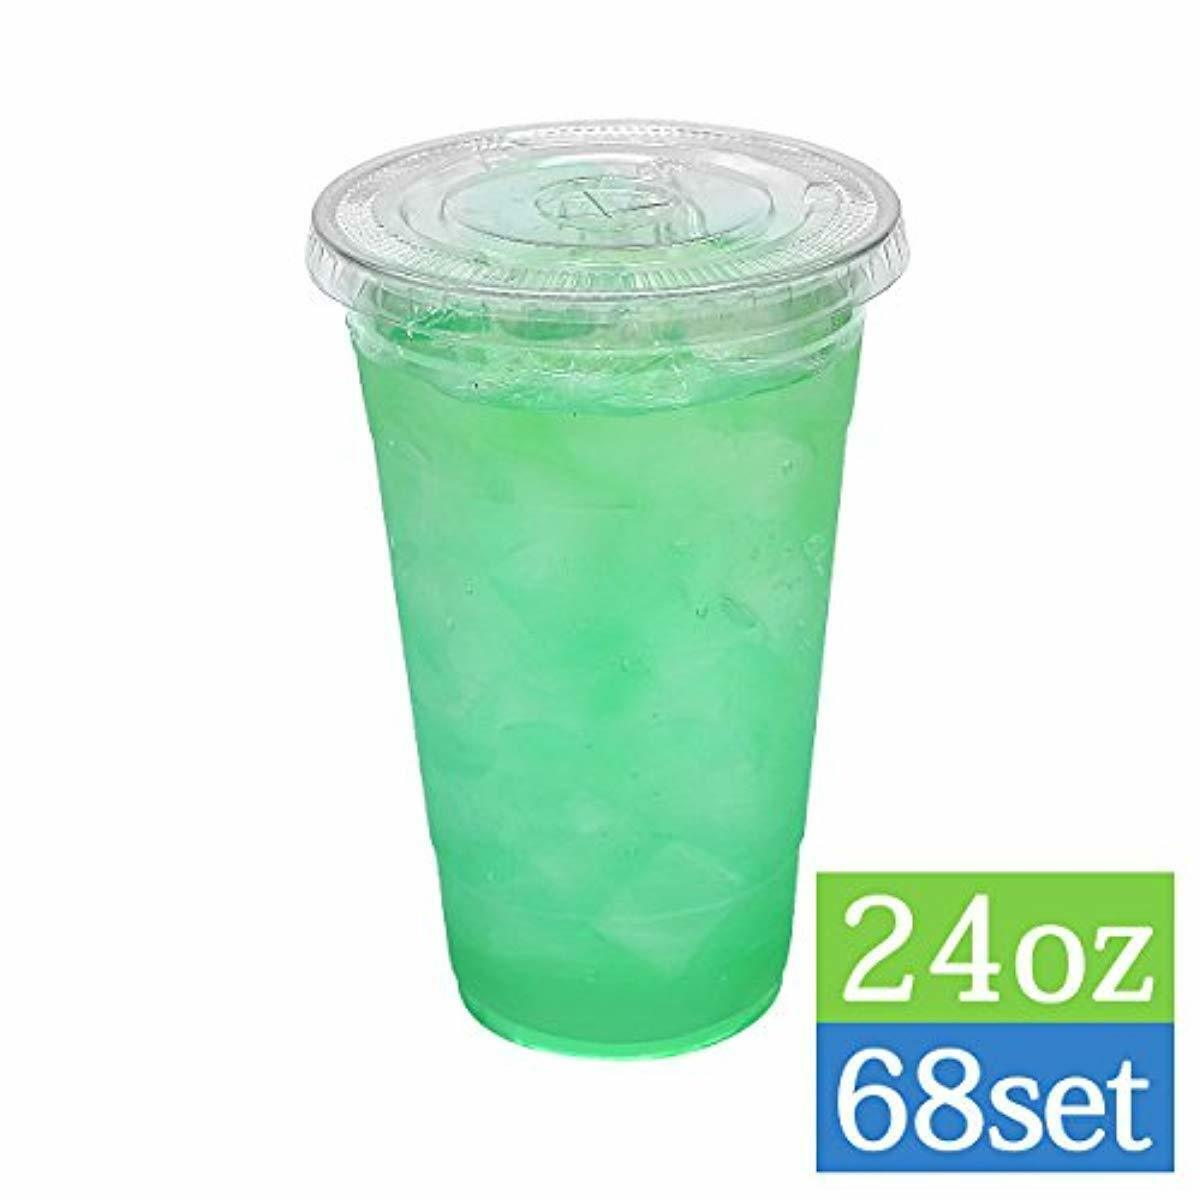 TashiBox Disposable Crystal Clear Cold Drink 24oz-68 Sets Plastic Cups with Ice